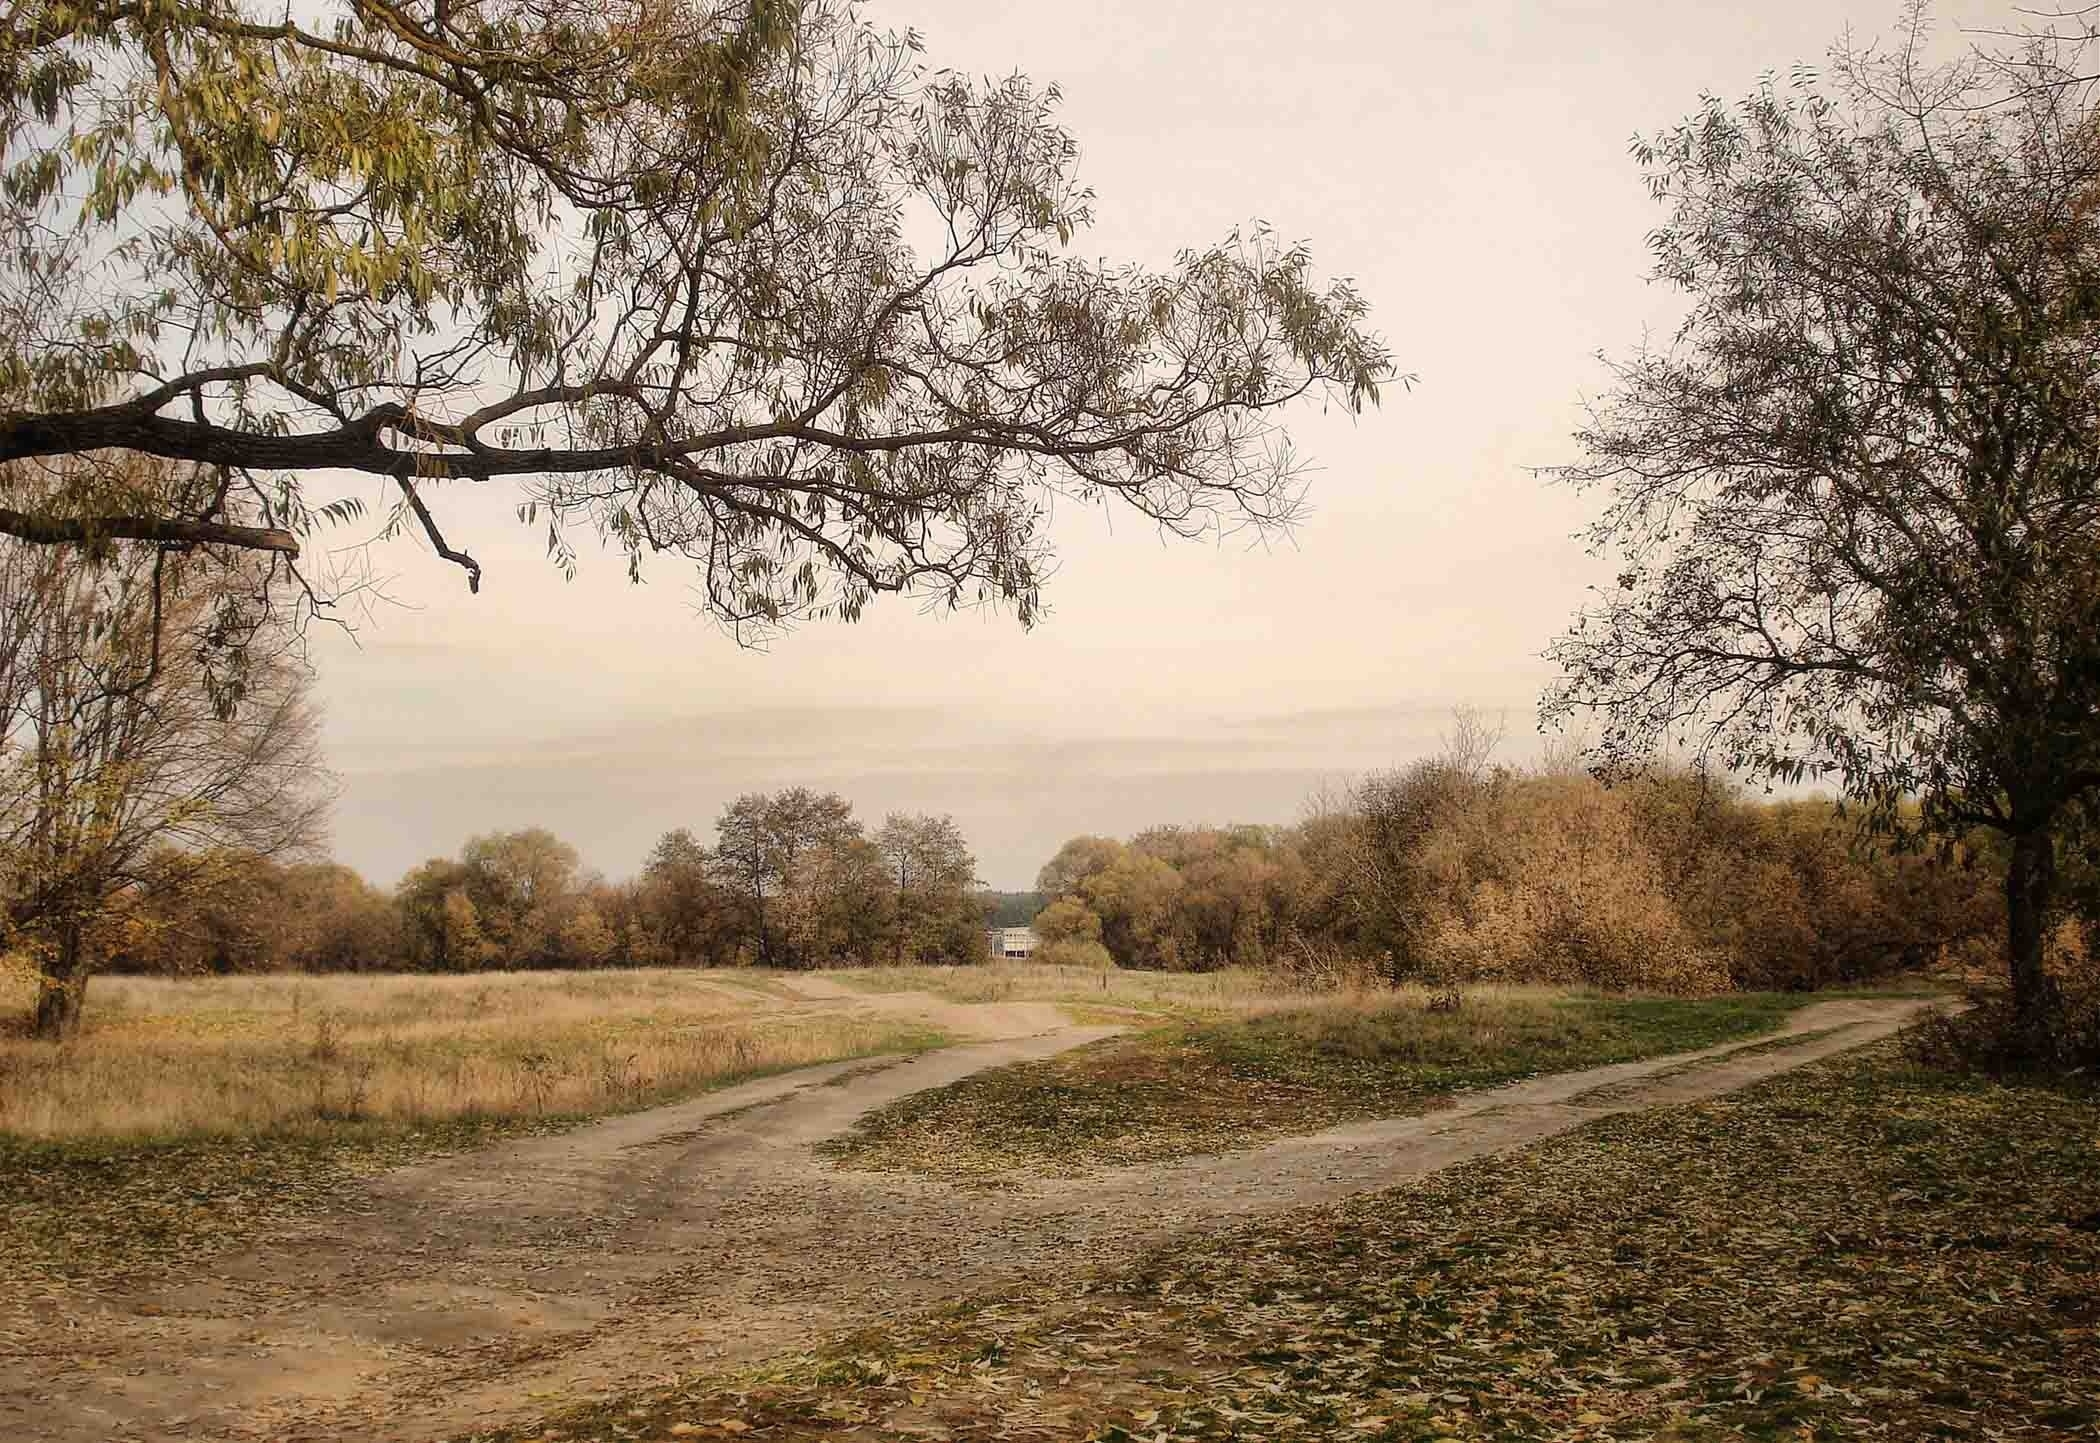 151061 free download Gray wallpapers for phone, Landscape, Nature, Roads, Autumn, Country, Countryside Gray images and screensavers for mobile